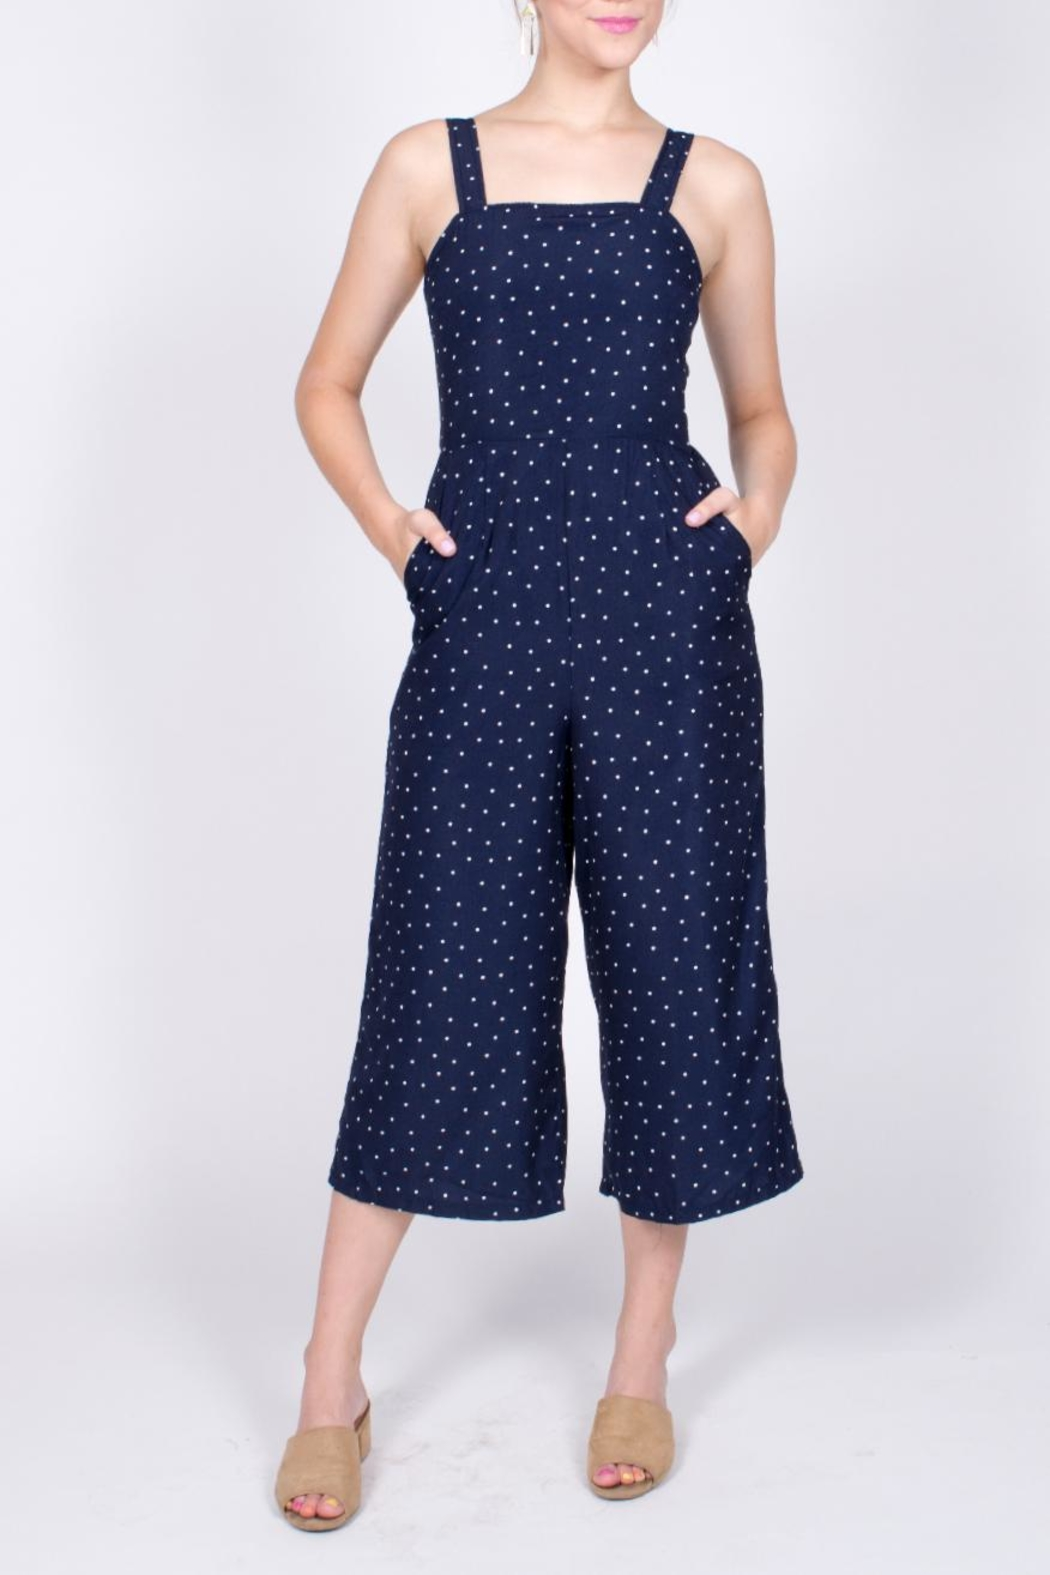 Very J Polka Dot Jumpsuit - Main Image